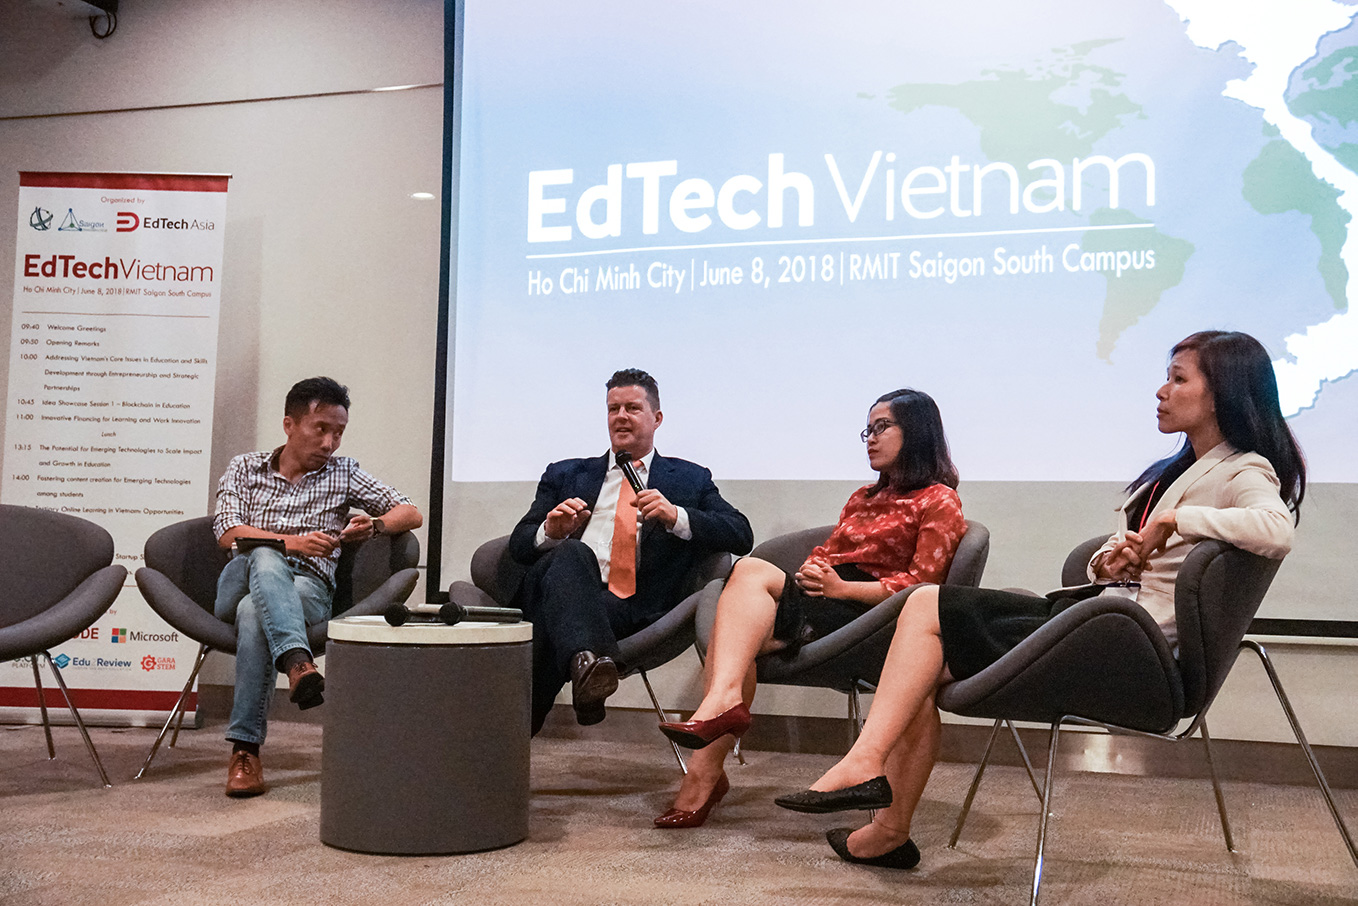 Professor Rick Bennett, Head of RMIT Vietnam's School of Communication & Design, said that pedagogy must always come before technology.